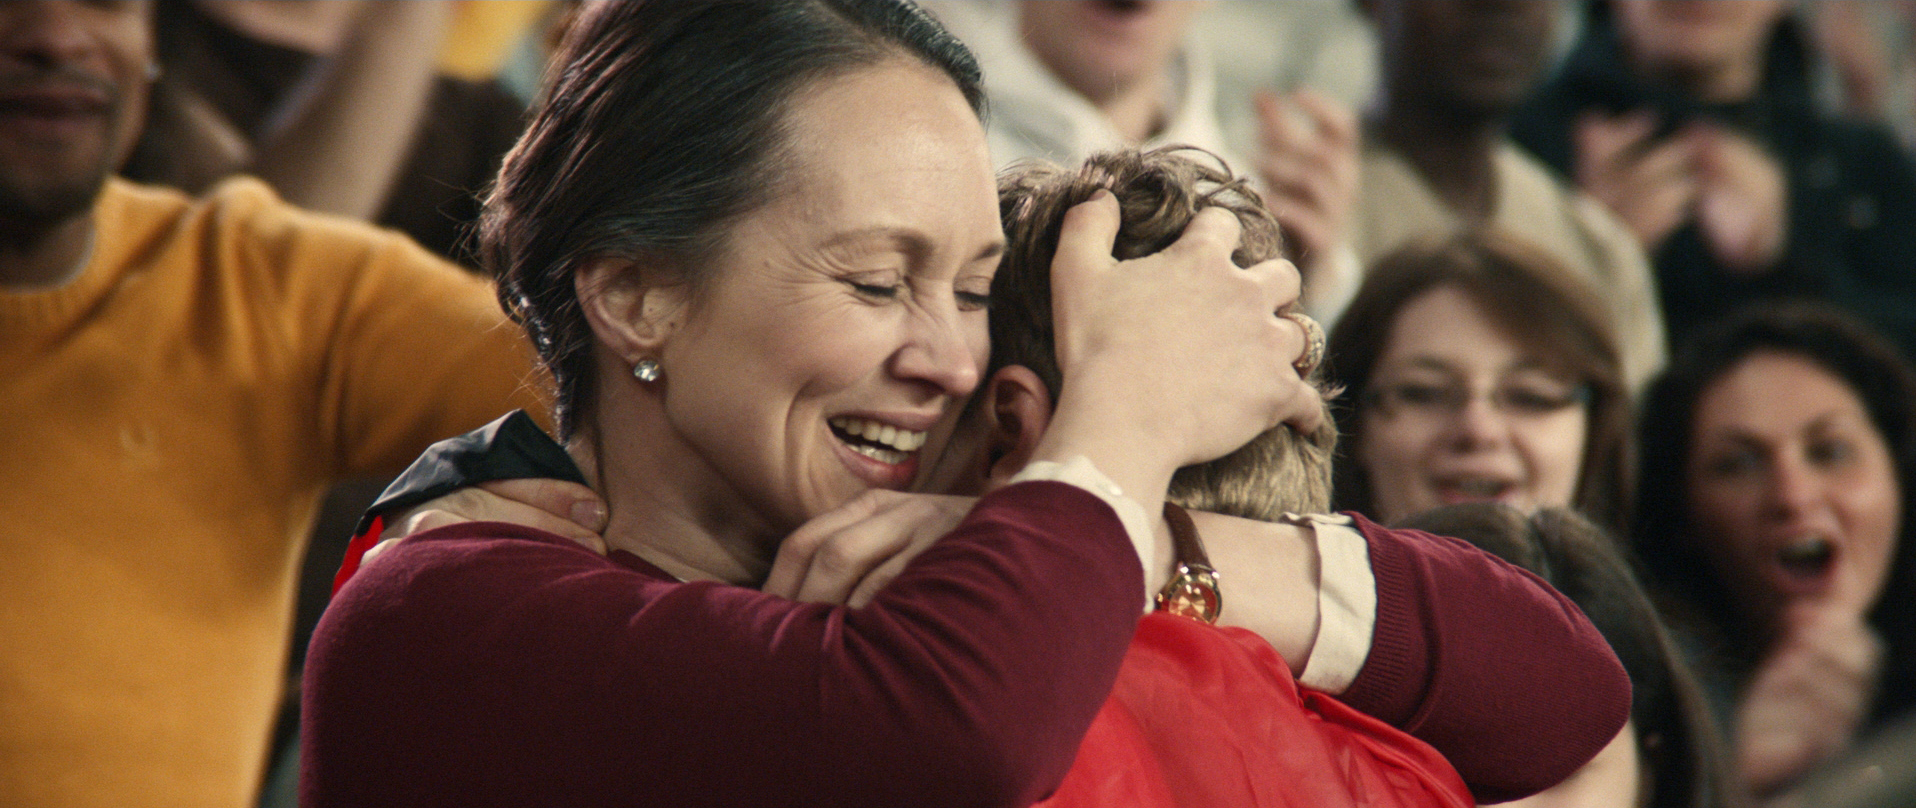 P&G's Latest 'Thank You, Mom' Video Has Us Psyched for the Olympics